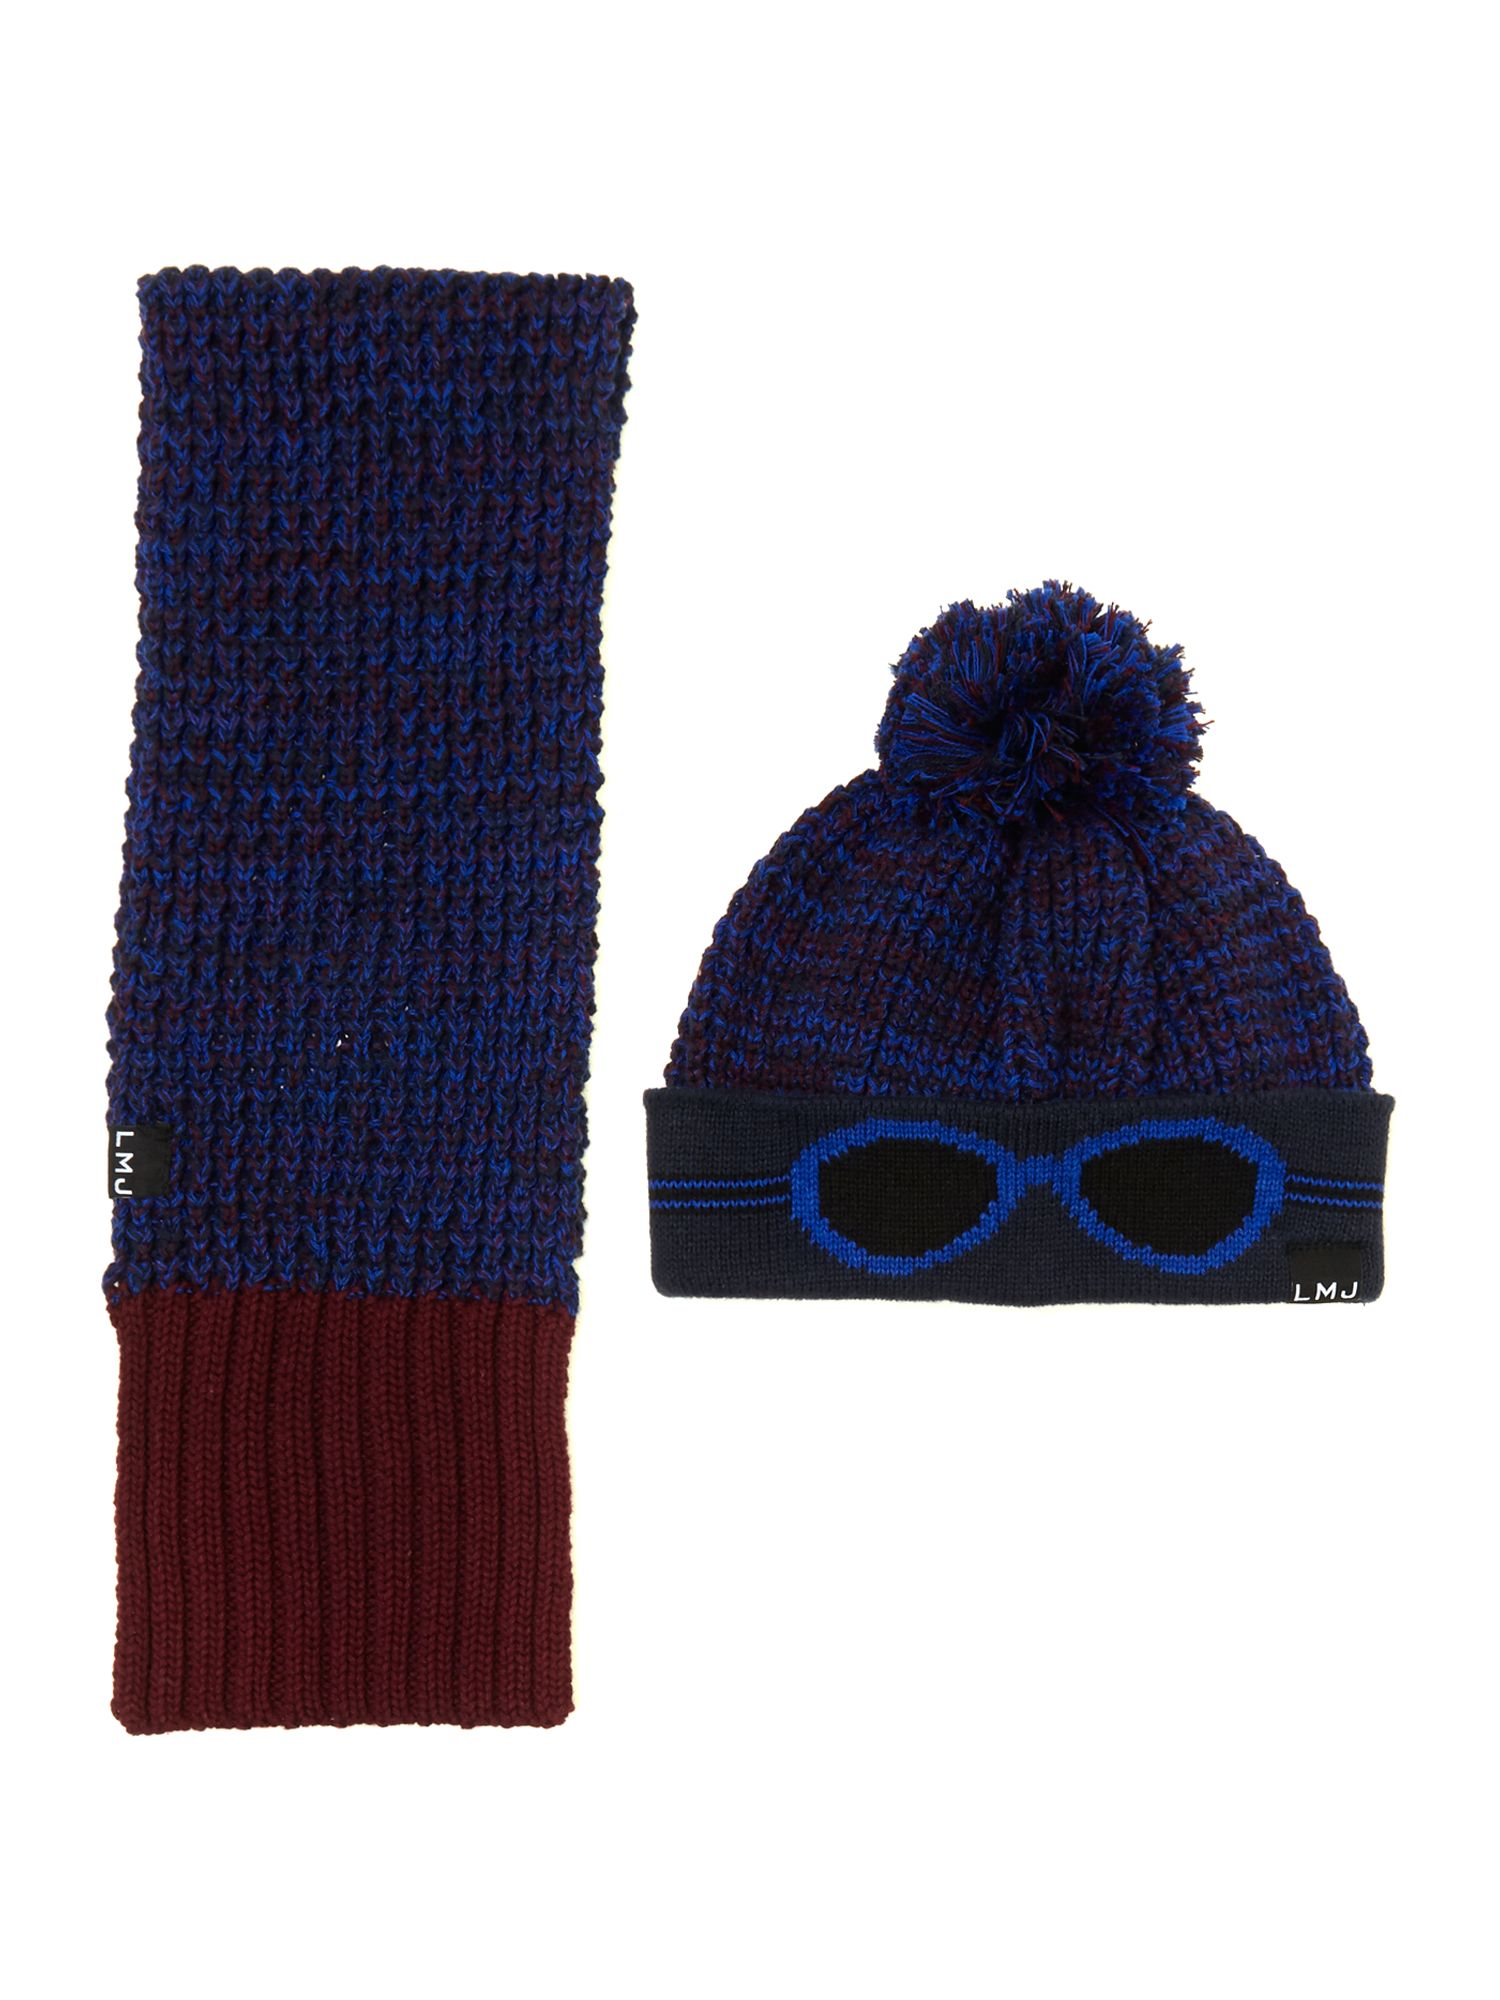 Boys set of knitted hat and scarf